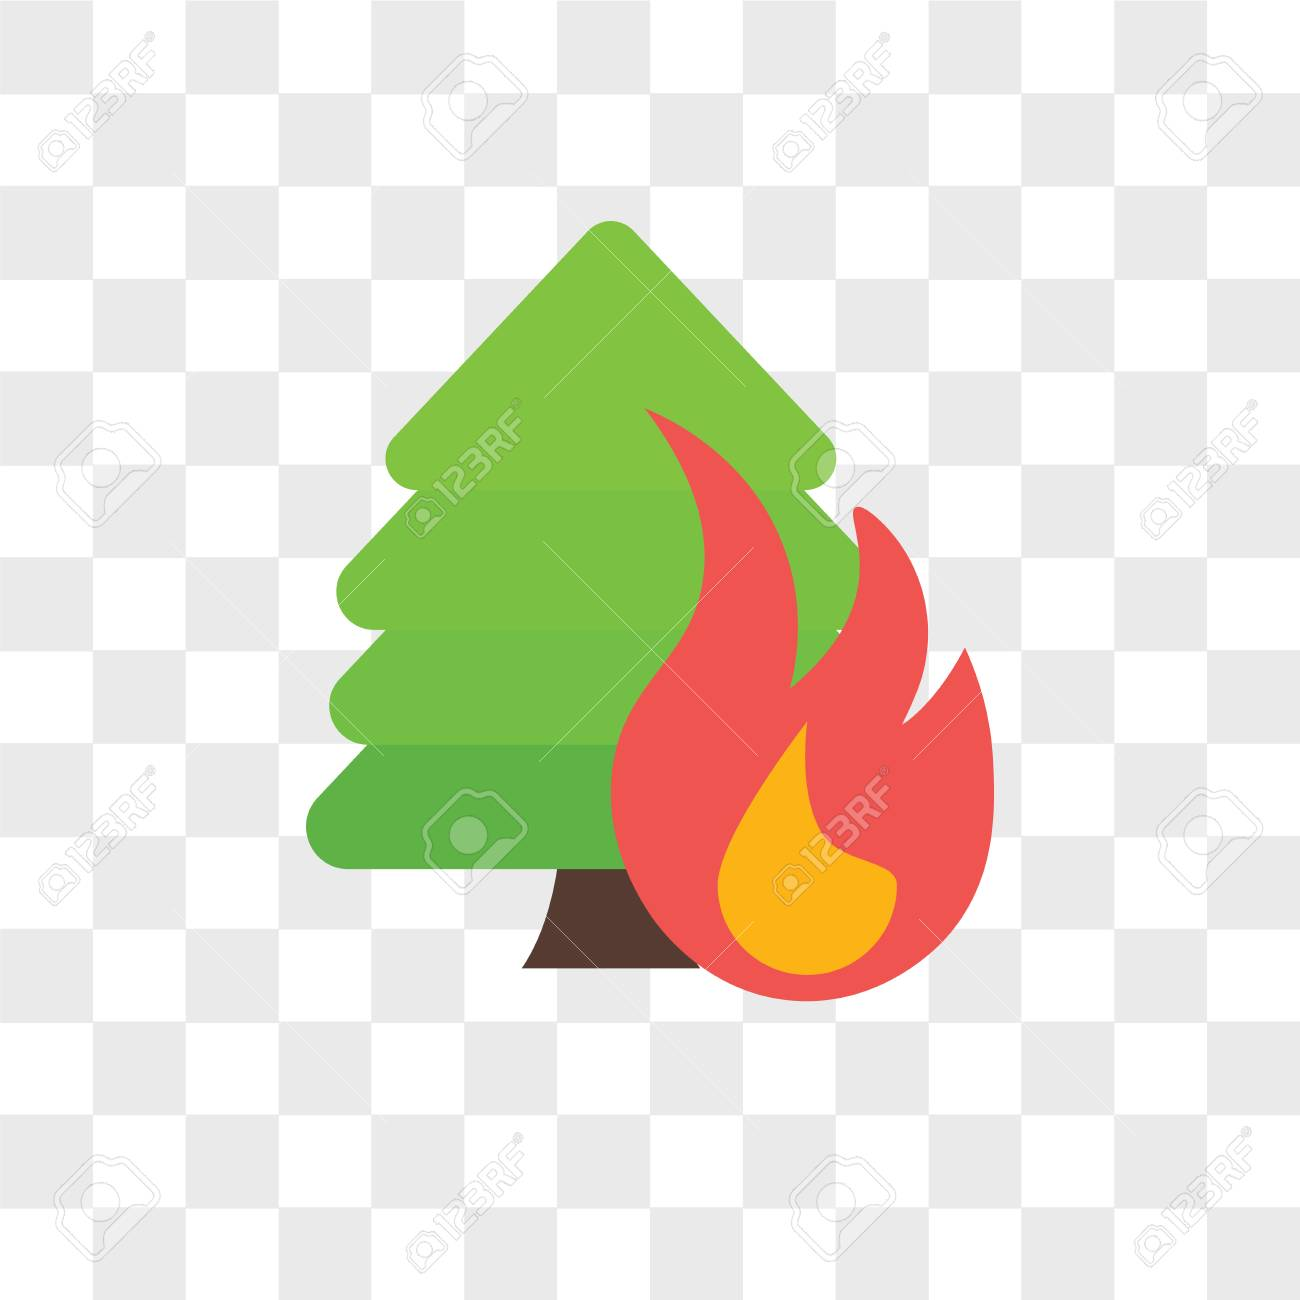 Forest fire vector icon isolated on transparent background, Forest fire logo concept - 106758885